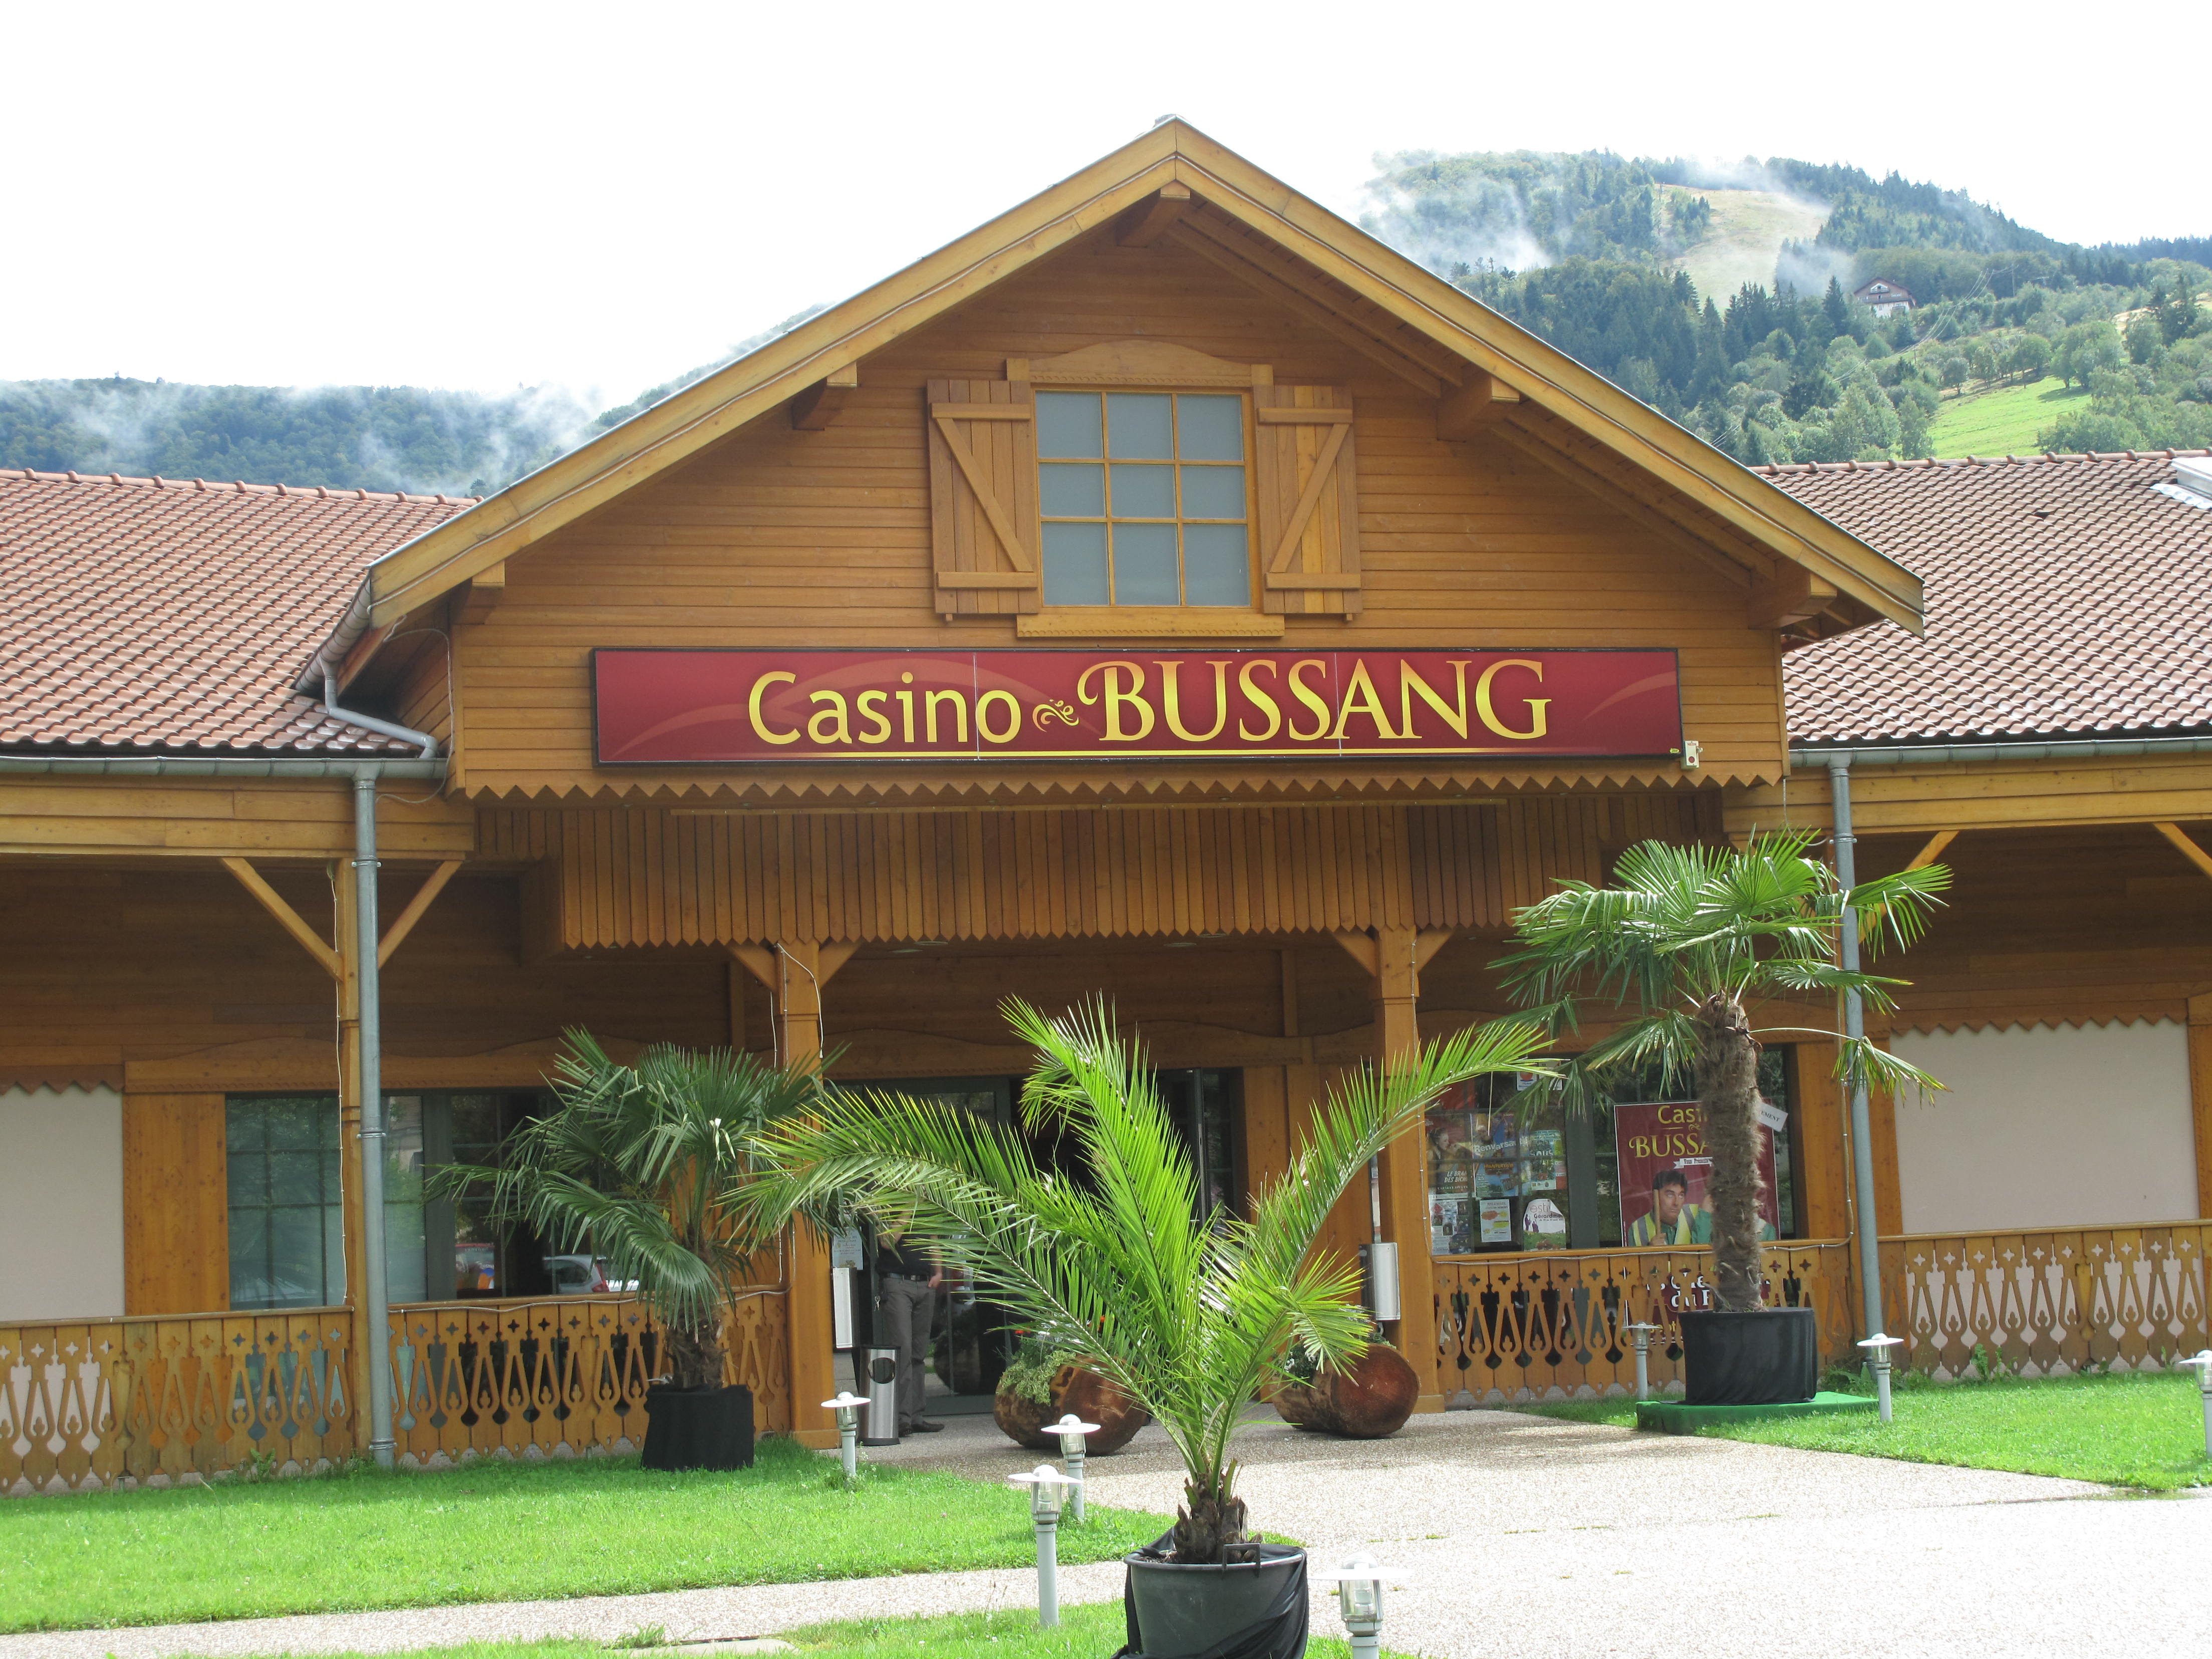 Casino de bussang house of cards book about gambling